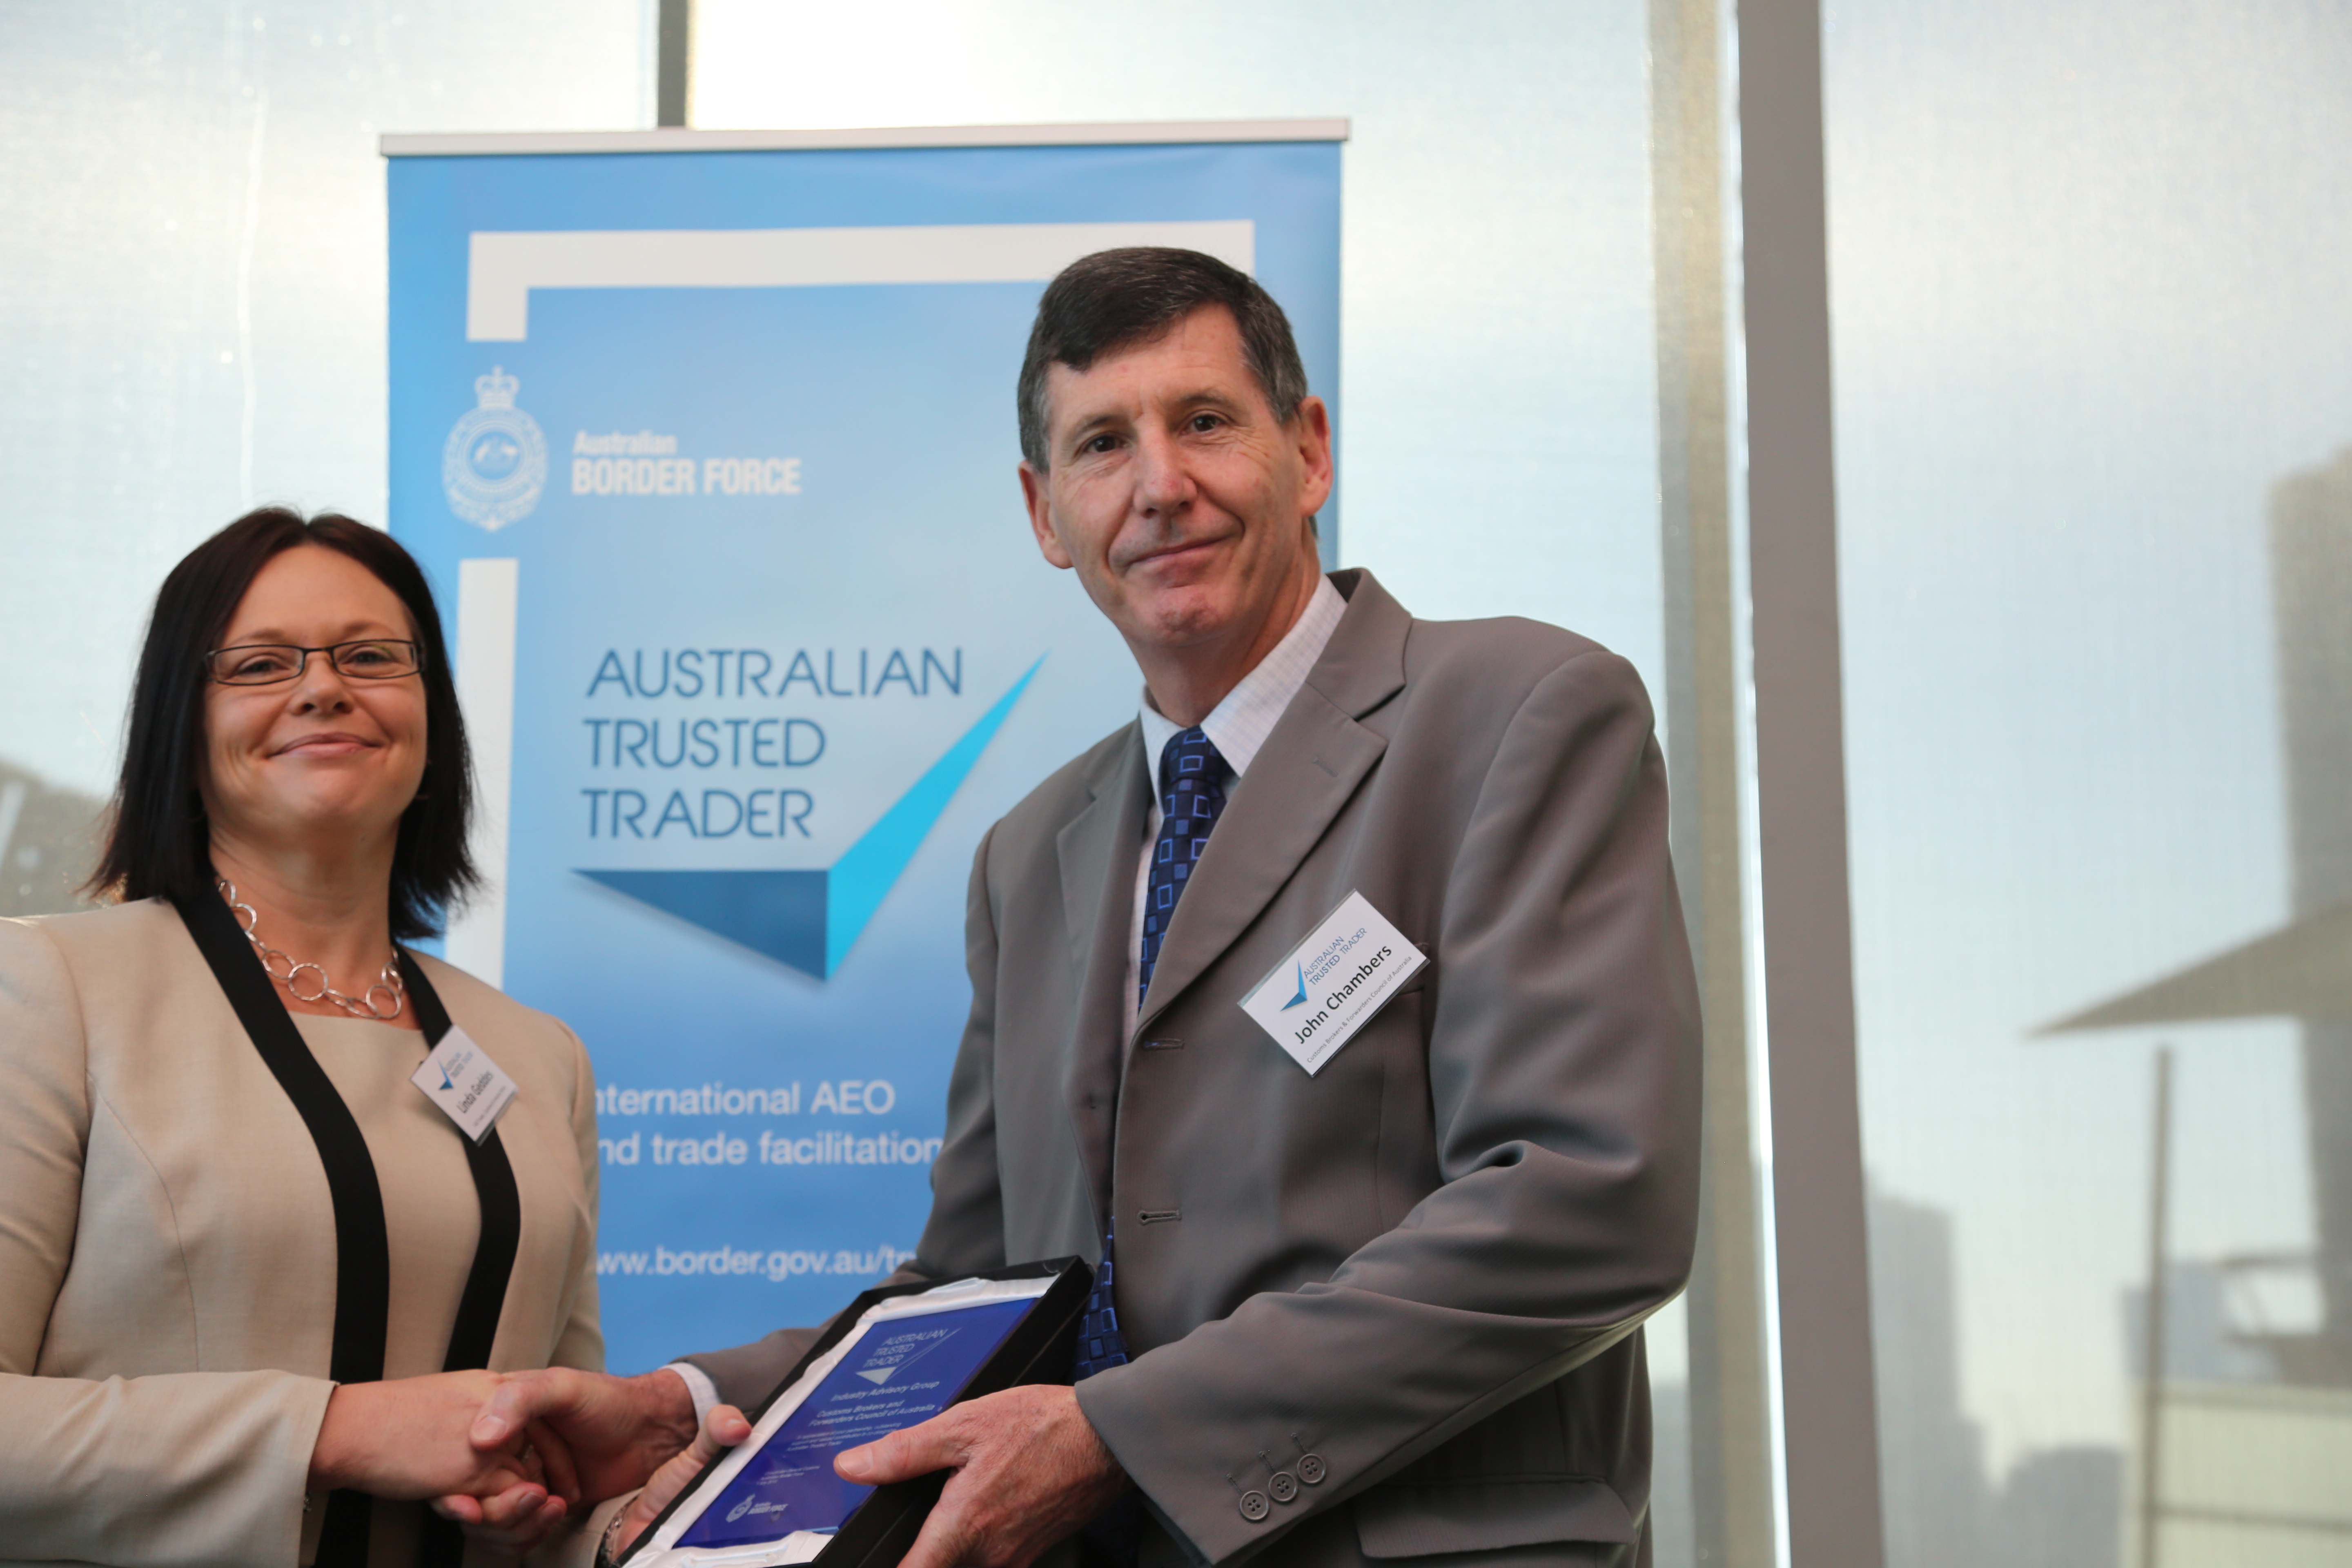 Streamlined trade a step closer trade customs and industry policy division linda geddes and cbfca chair john chambers celebrating the launch of australian trusted trader malvernweather Images